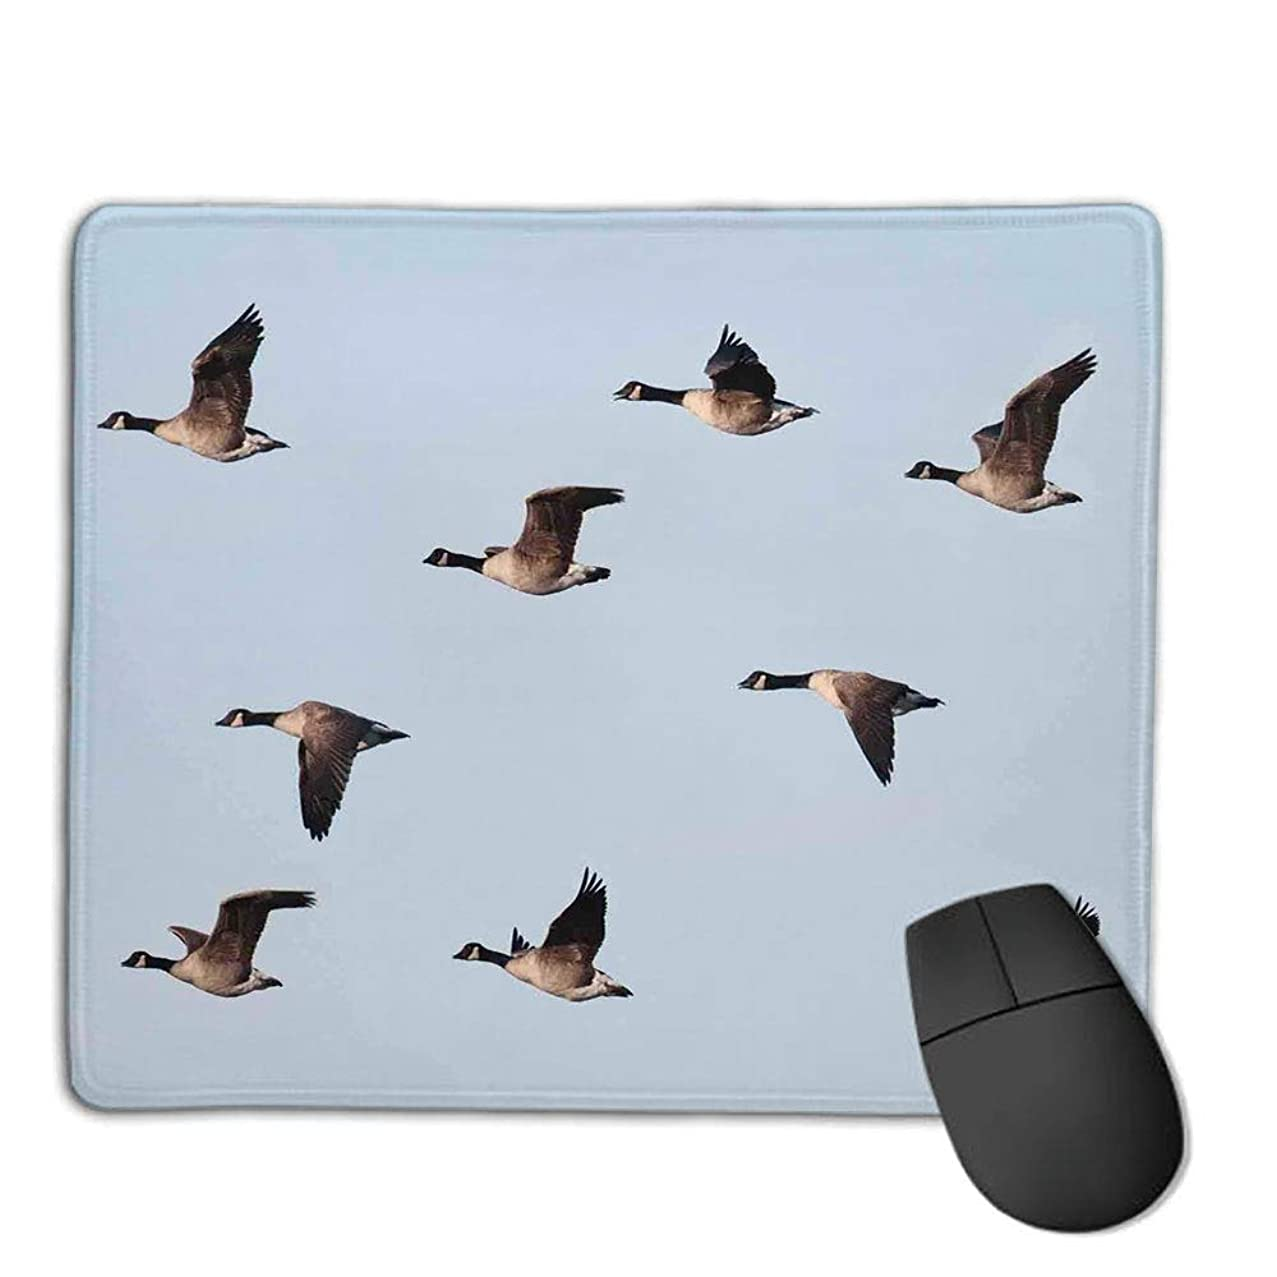 Comfortable Mouse Pad Quality Selection,Geese Decor,Canada Goose (Branta Canadensis) in Flight Clear Sky Traveling Feather Picture,Consoles More Enjoy Precise & Smooth Operating Experience,H9.8XW11.